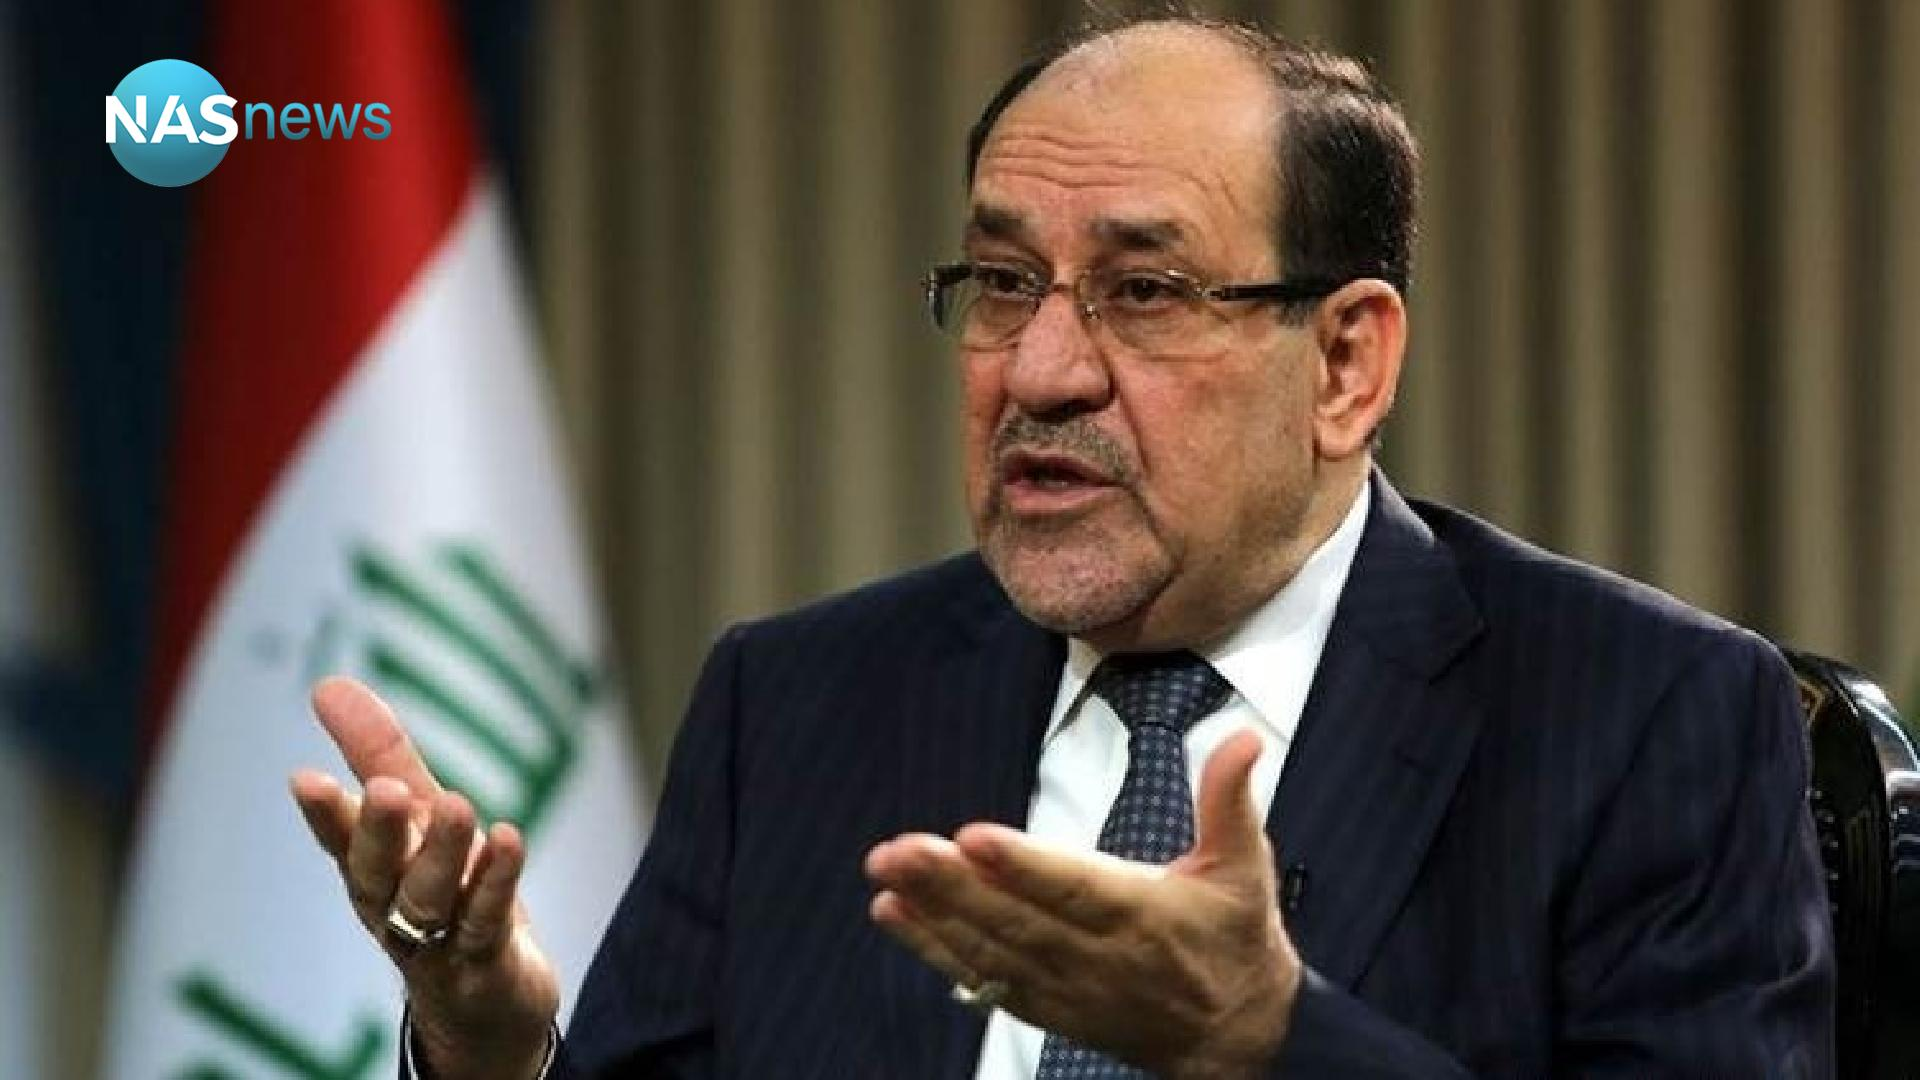 An 'angry' statement from Al-Maliki's bloc .. 'Whoever makes himself a reporter, get ready to face the judiciary' Dda12d2fe-56795-202104020250